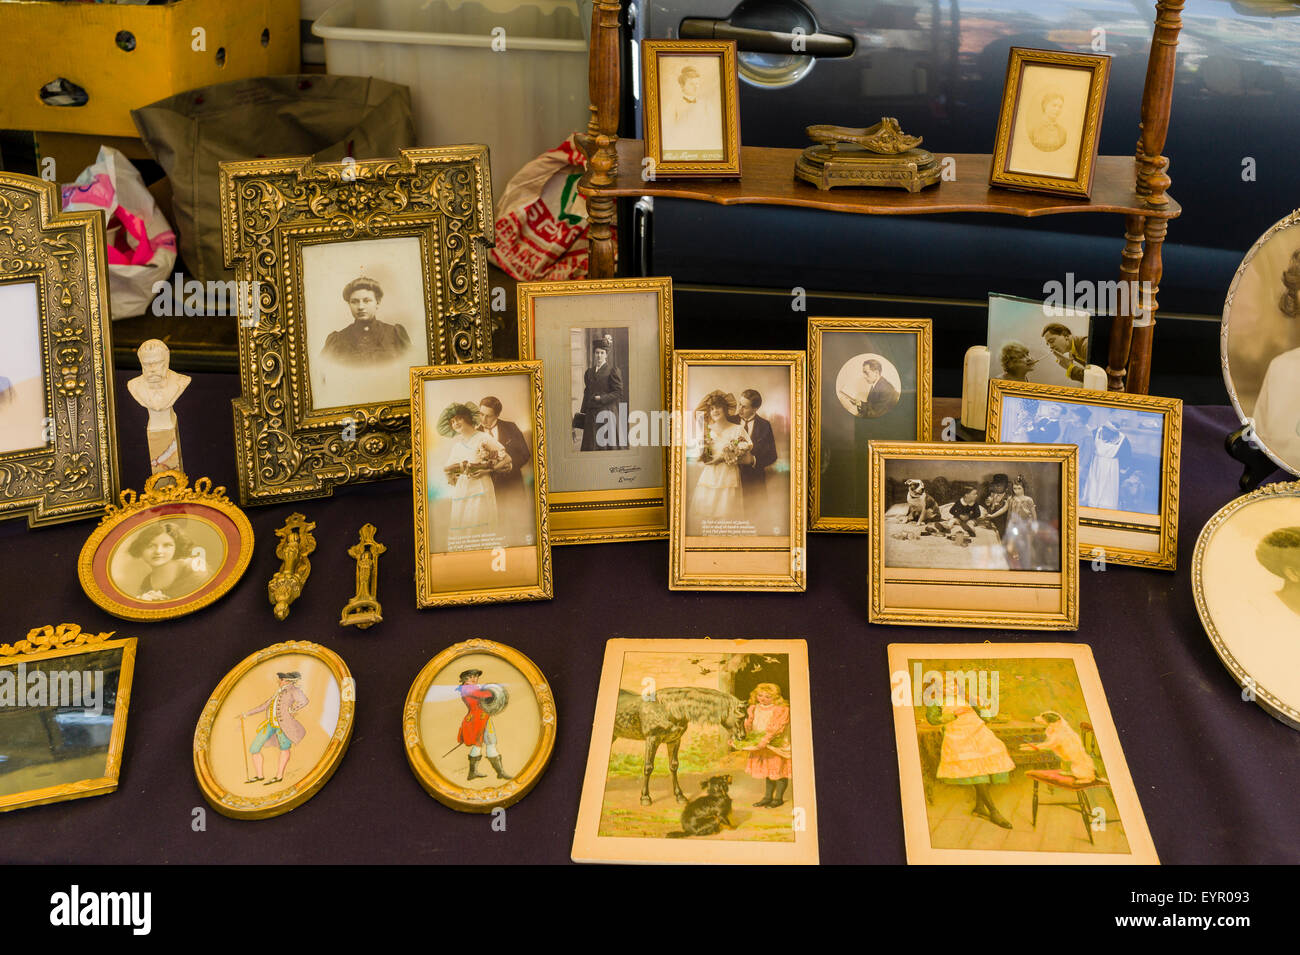 Old family photographs and other mementos photographed in a flea market in Antwerp, Belgium. - Stock Image